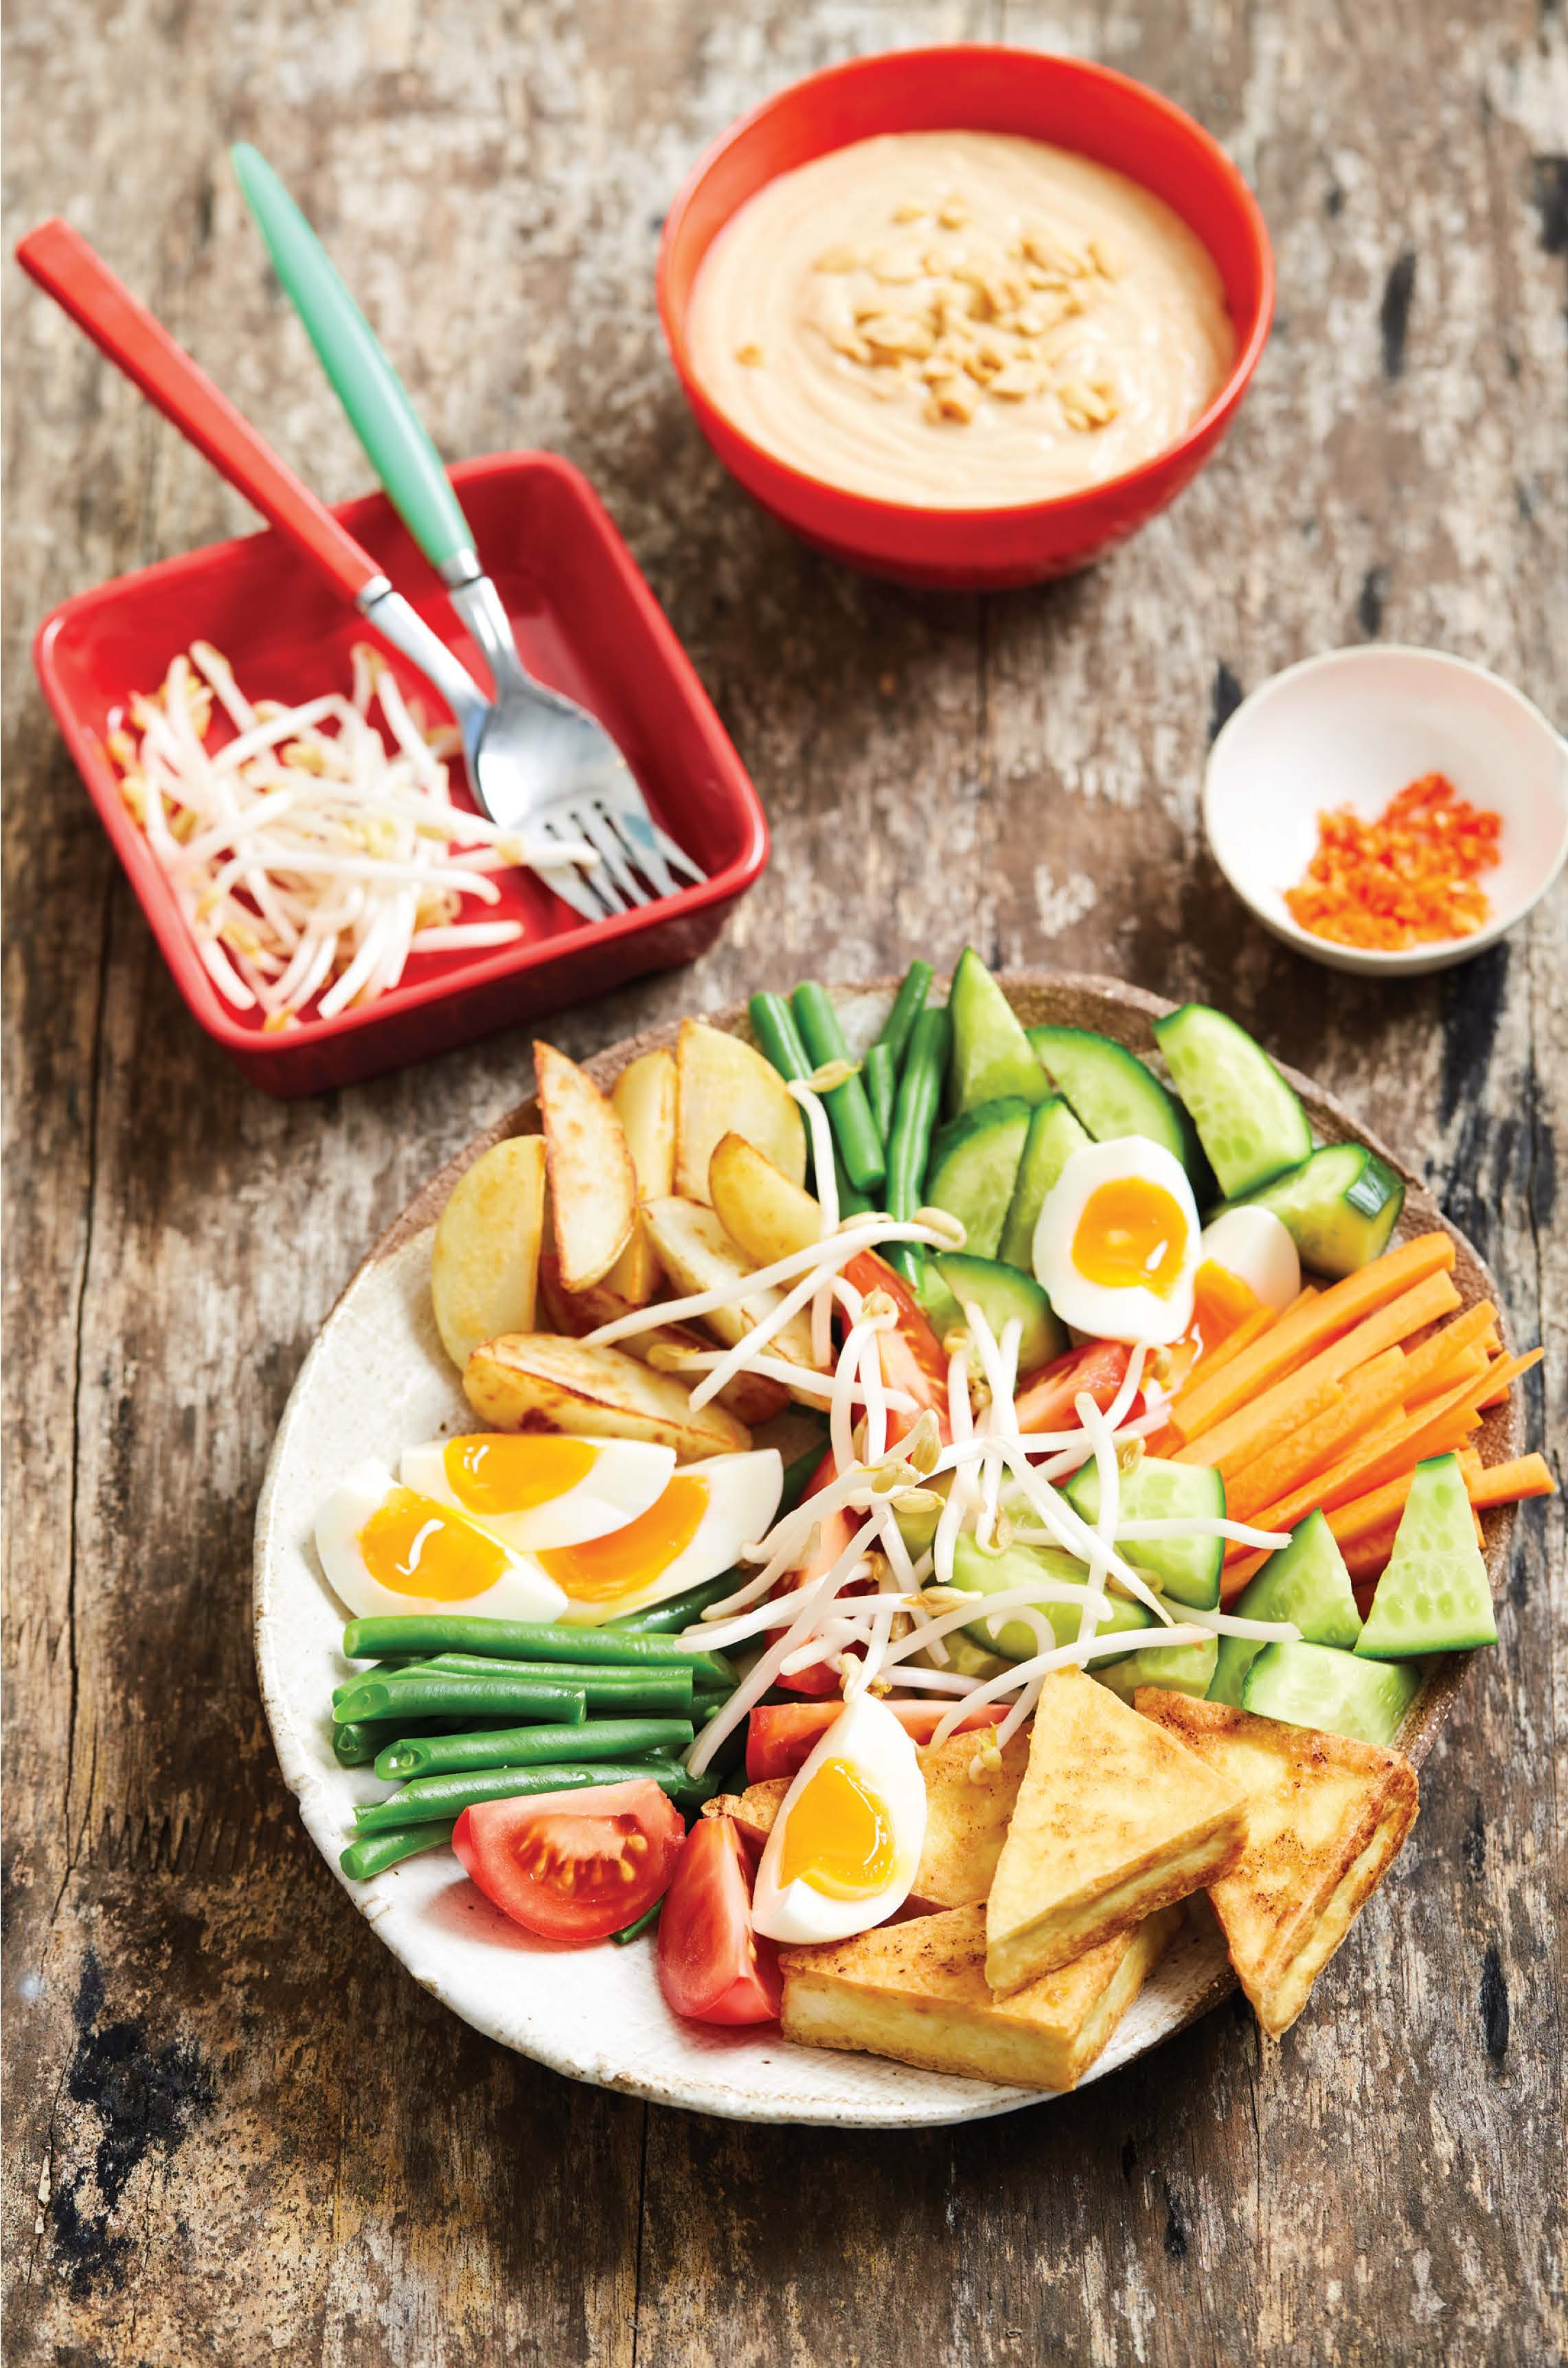 Crunchy vegetable gado gado salad